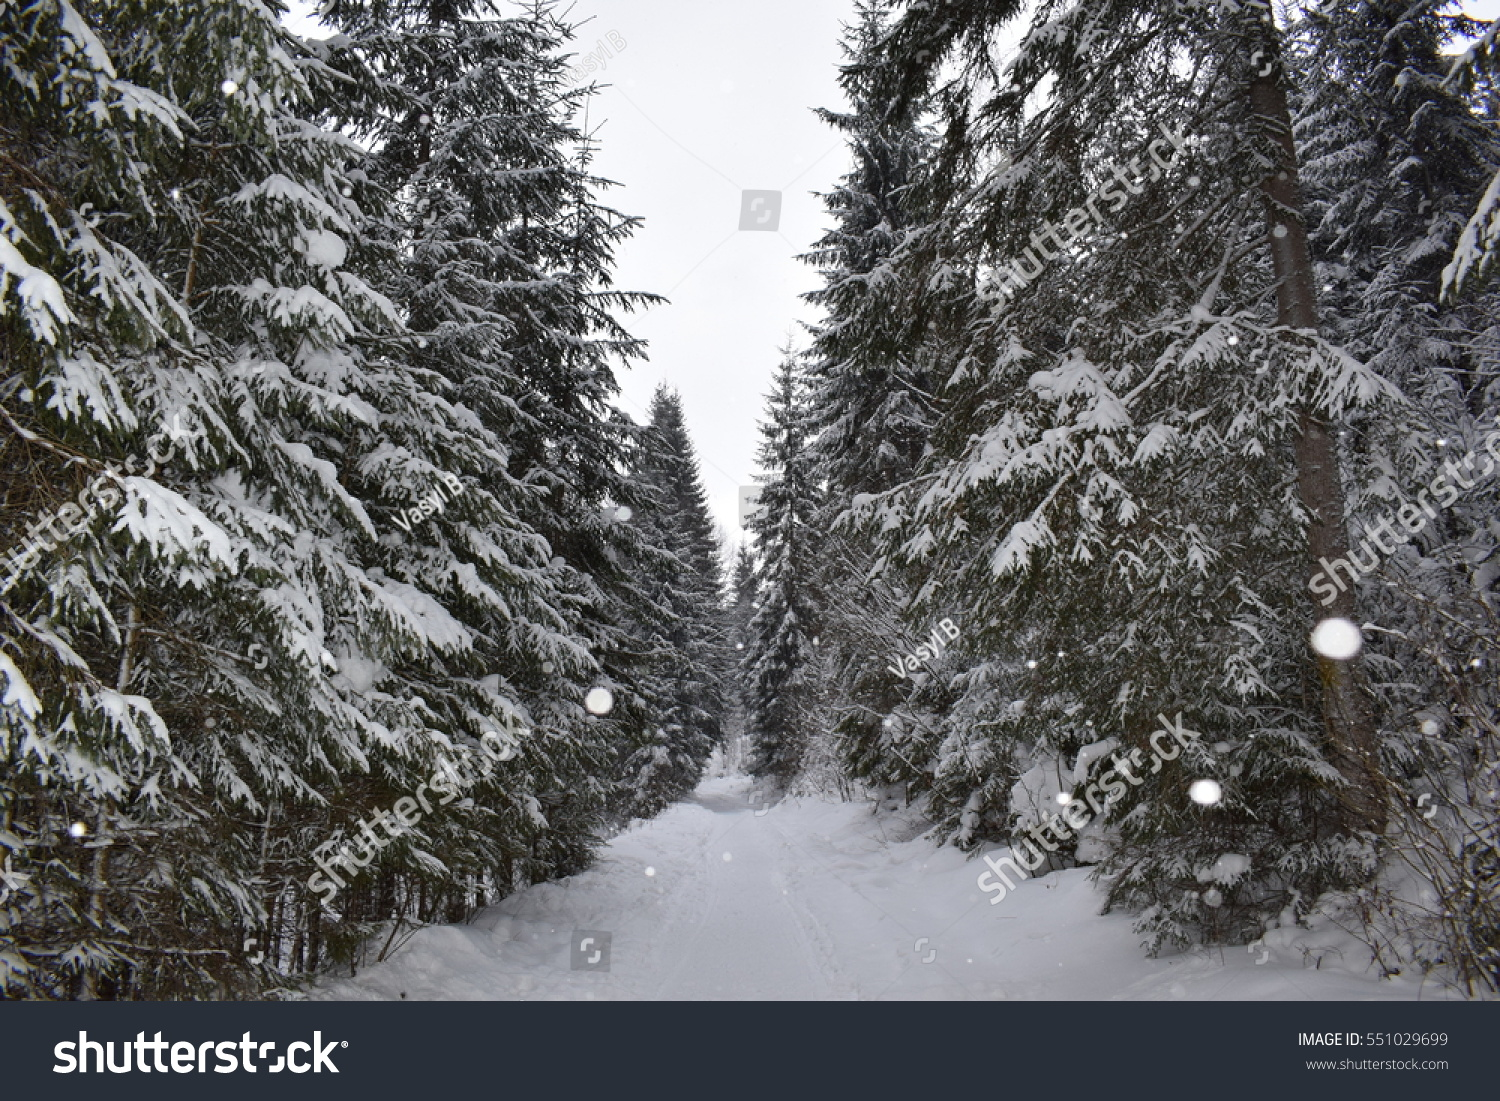 snowy forest white tree branches winter themed snowy pine forest winter on branches стоковые фотографии 255